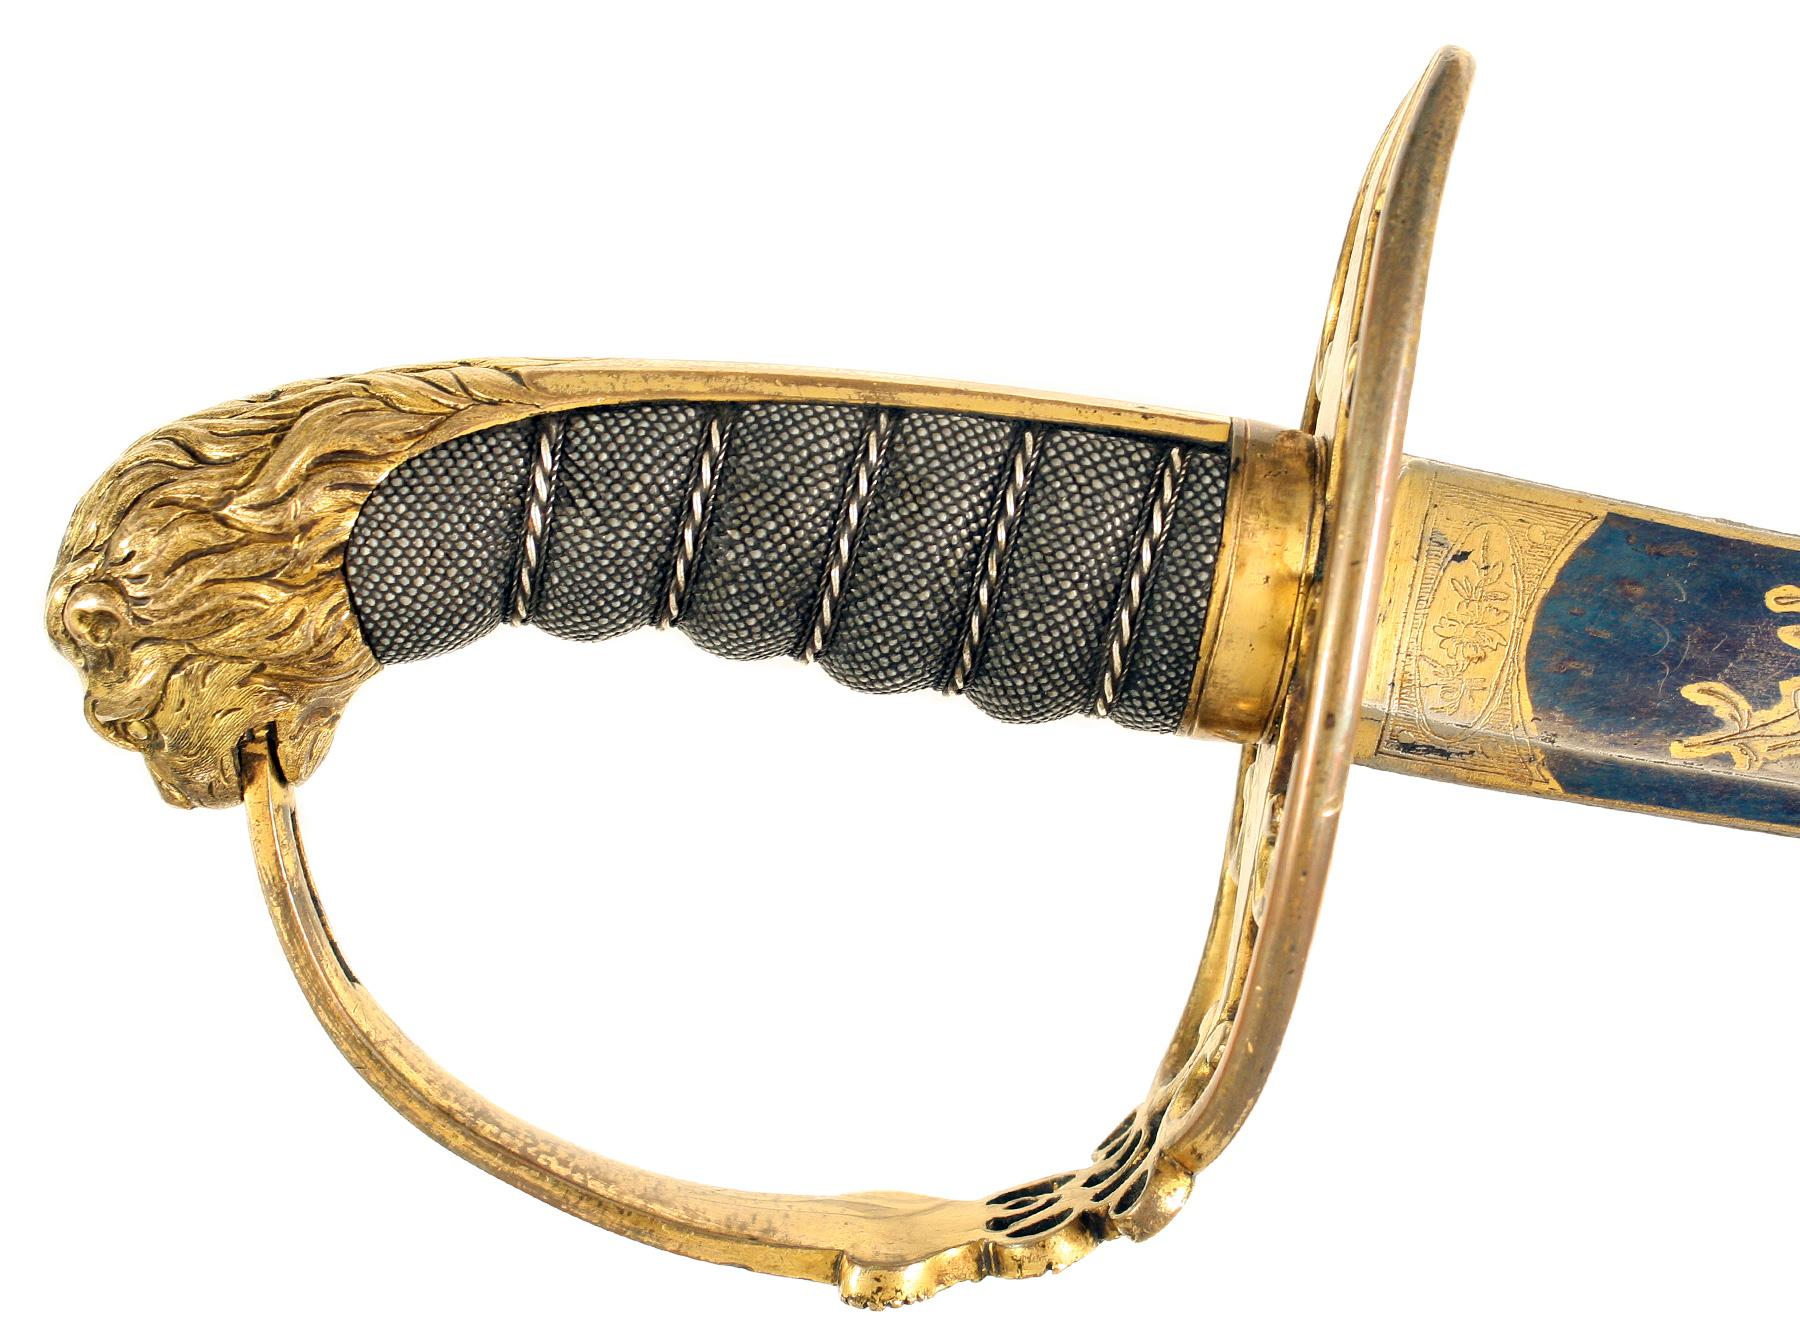 An 1803 Pattern Infantry Officer's Sword